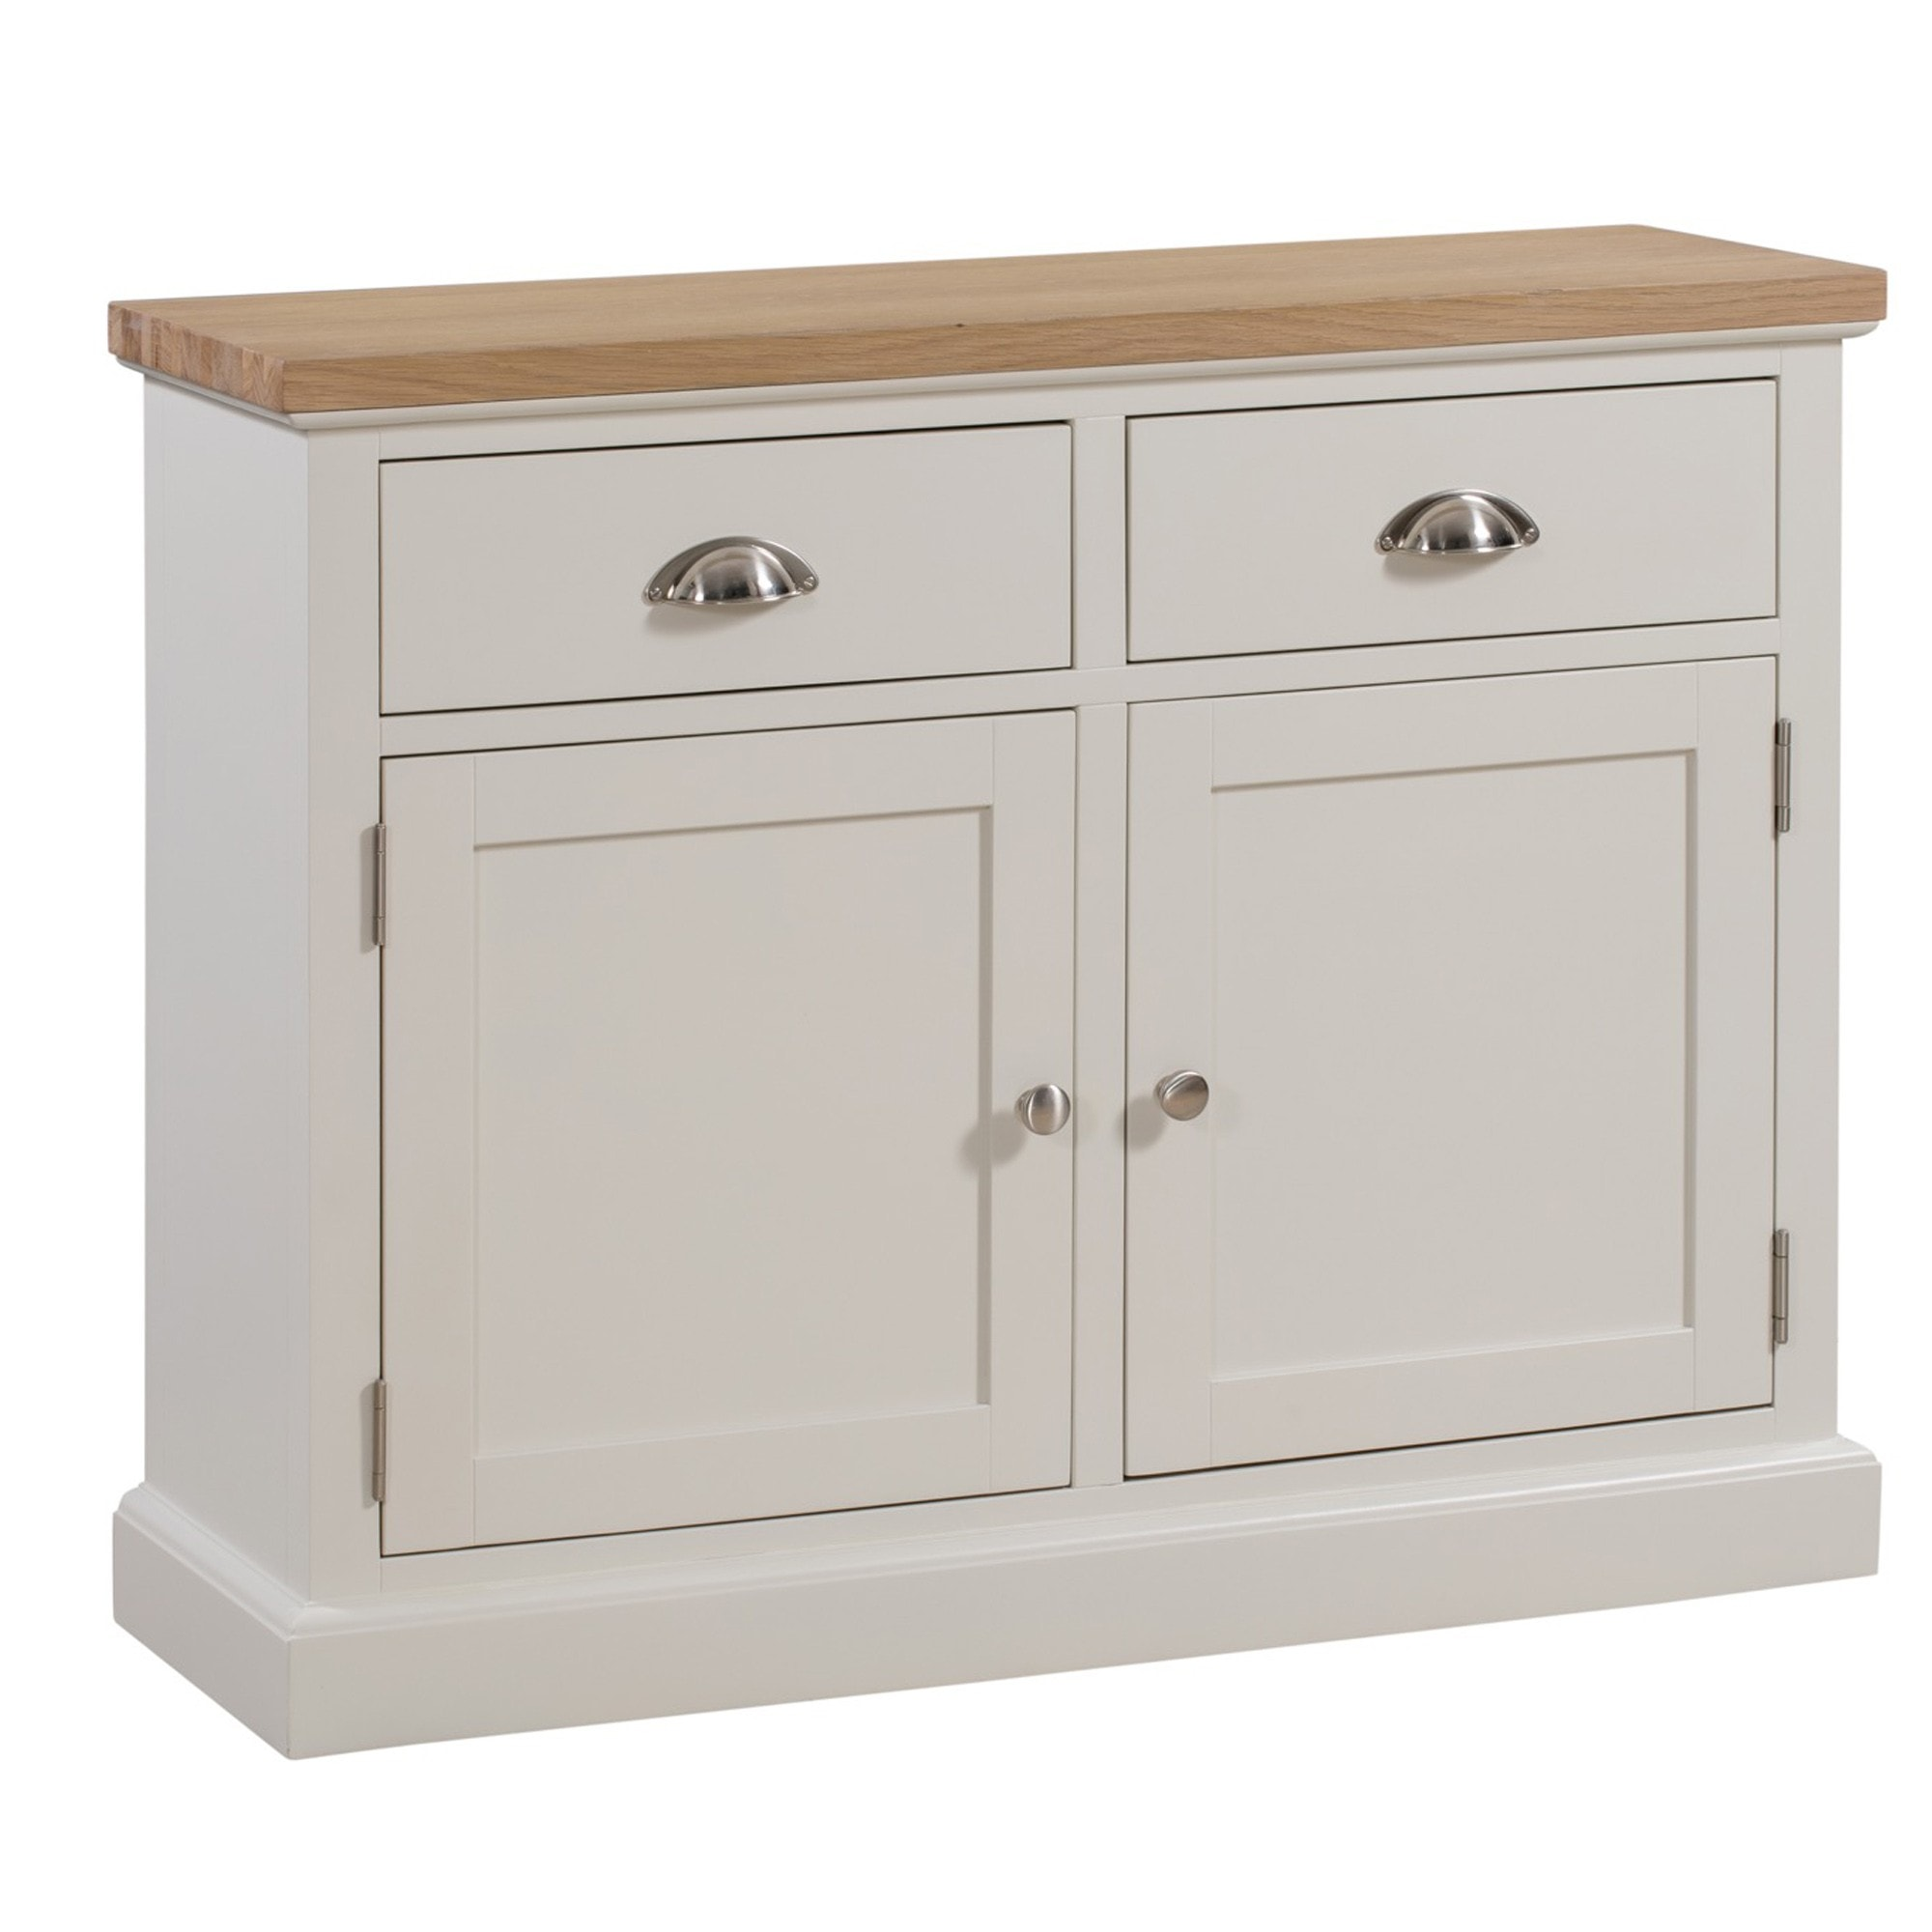 Ripley Shabby Chic Two Door Two Drawer Sideboard Shabby Sideboard